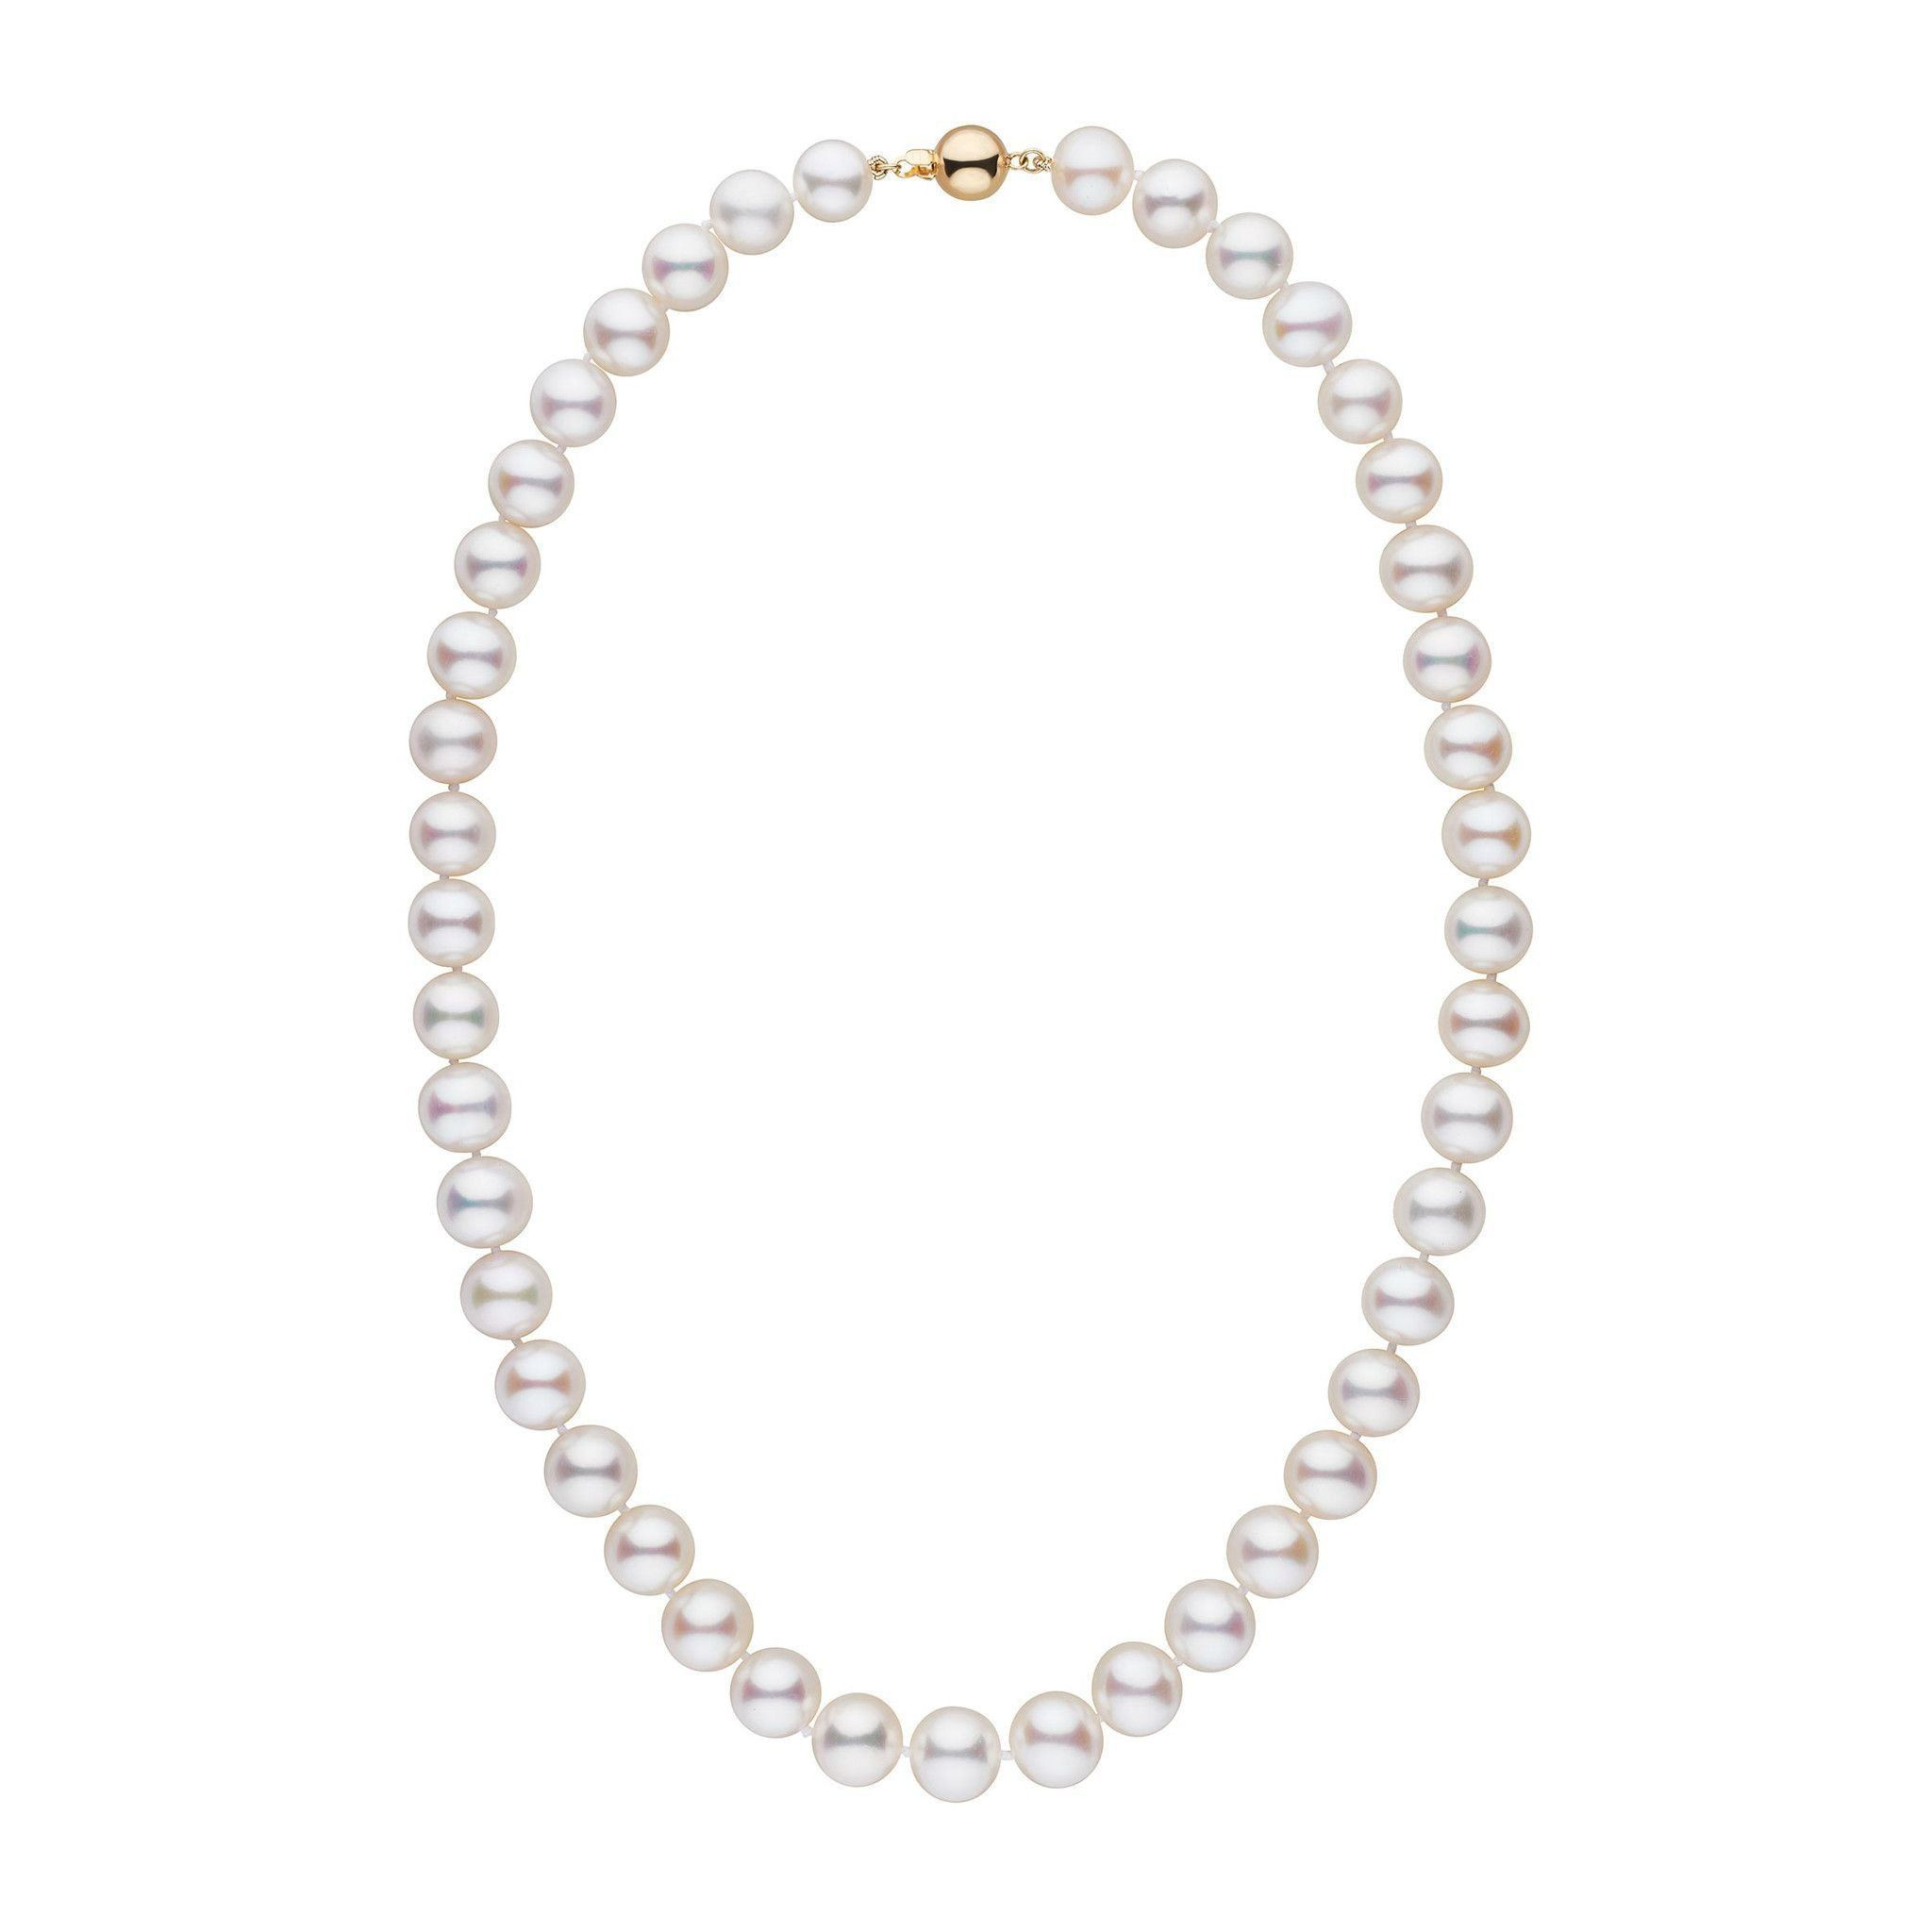 9.5-10.5 mm 18 inch AAA White Freshwater Pearl Necklace